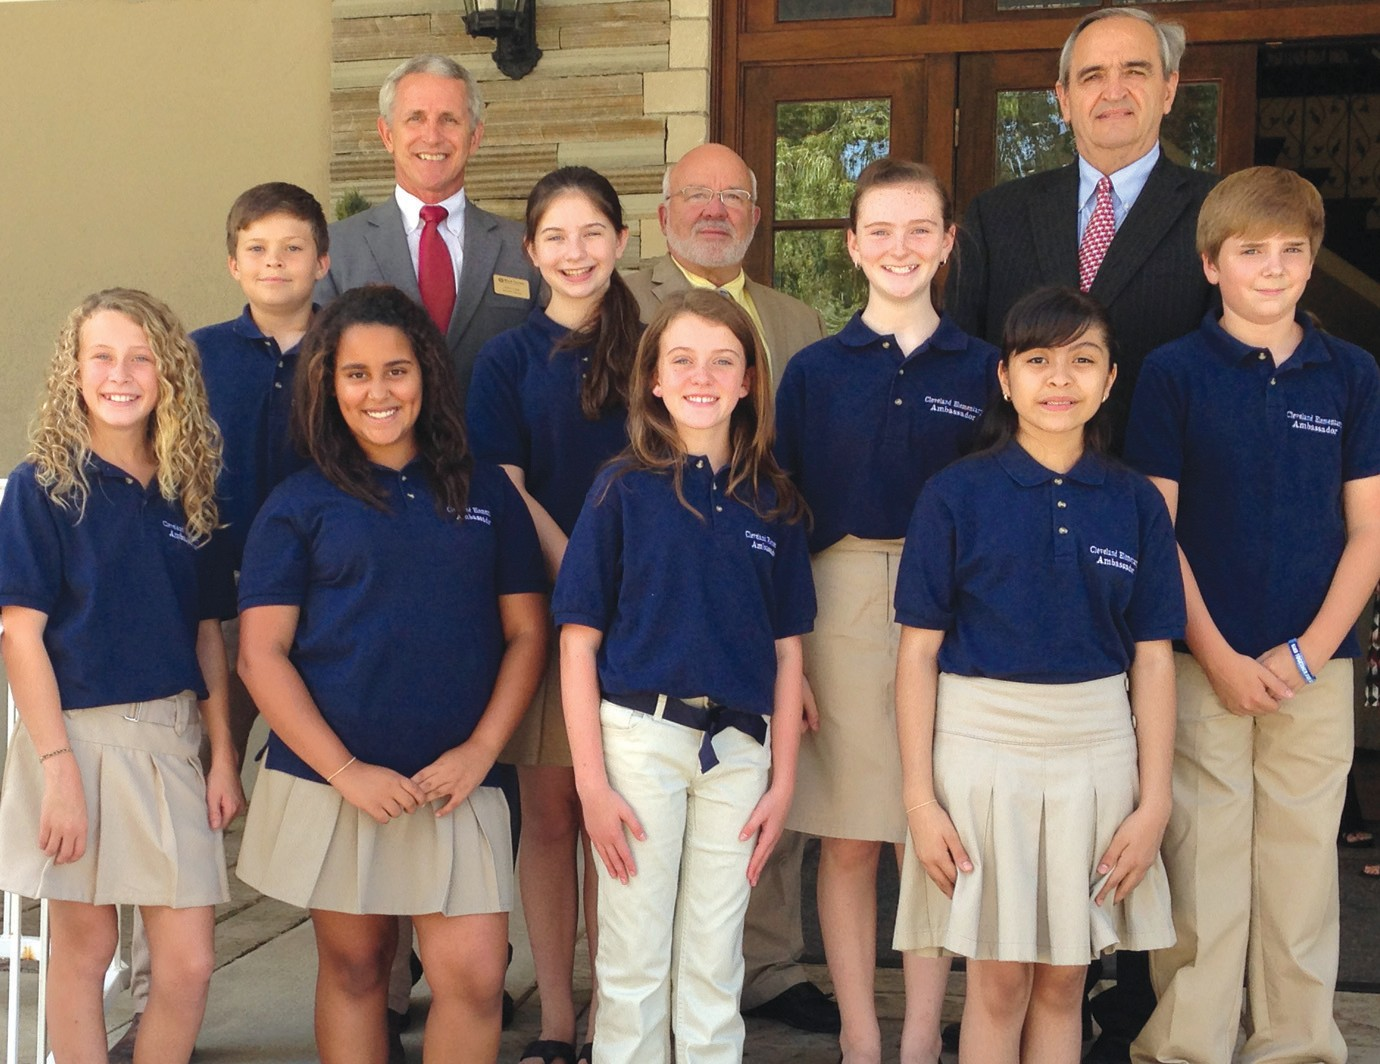 Featured at the last luncheon were eight sixth-graders who are members of the Cleveland Elementary Ambassadors. Front row (from left): Kiley Adams, Olivia Carrol, Karli Ann Wilson, and Mary Contreras. Second row (from left): Elijah Longshore, Jenna Friese, Madison Love, and Matt Lee. Back row (from left): chamber executive director Donny Ray, District 3 Commissioner Gary Stricklin, and Blount County Supt. Jim Carr.